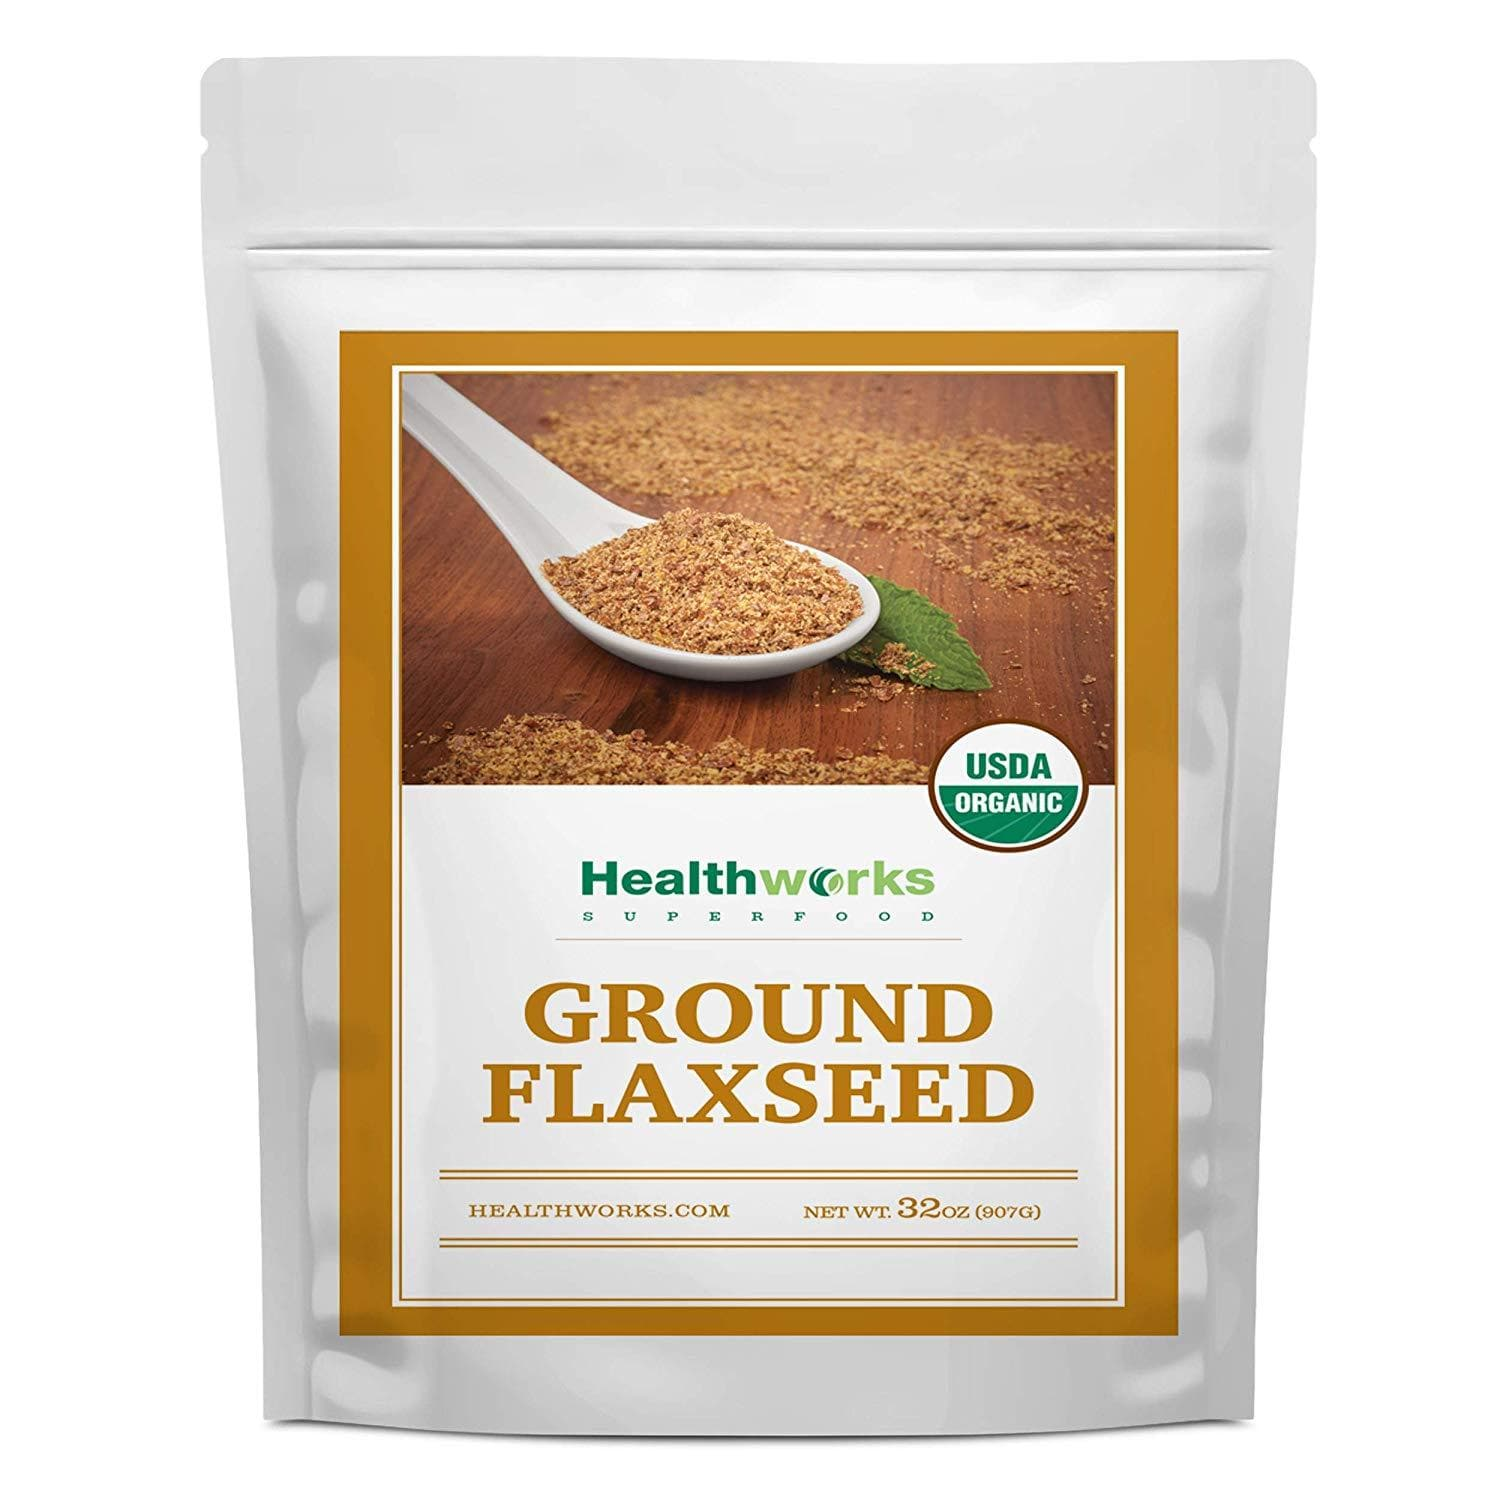 Healthworks Ground Flaxseed Organic Cold-Milled, 2lb - Healthworks Superfood Organic